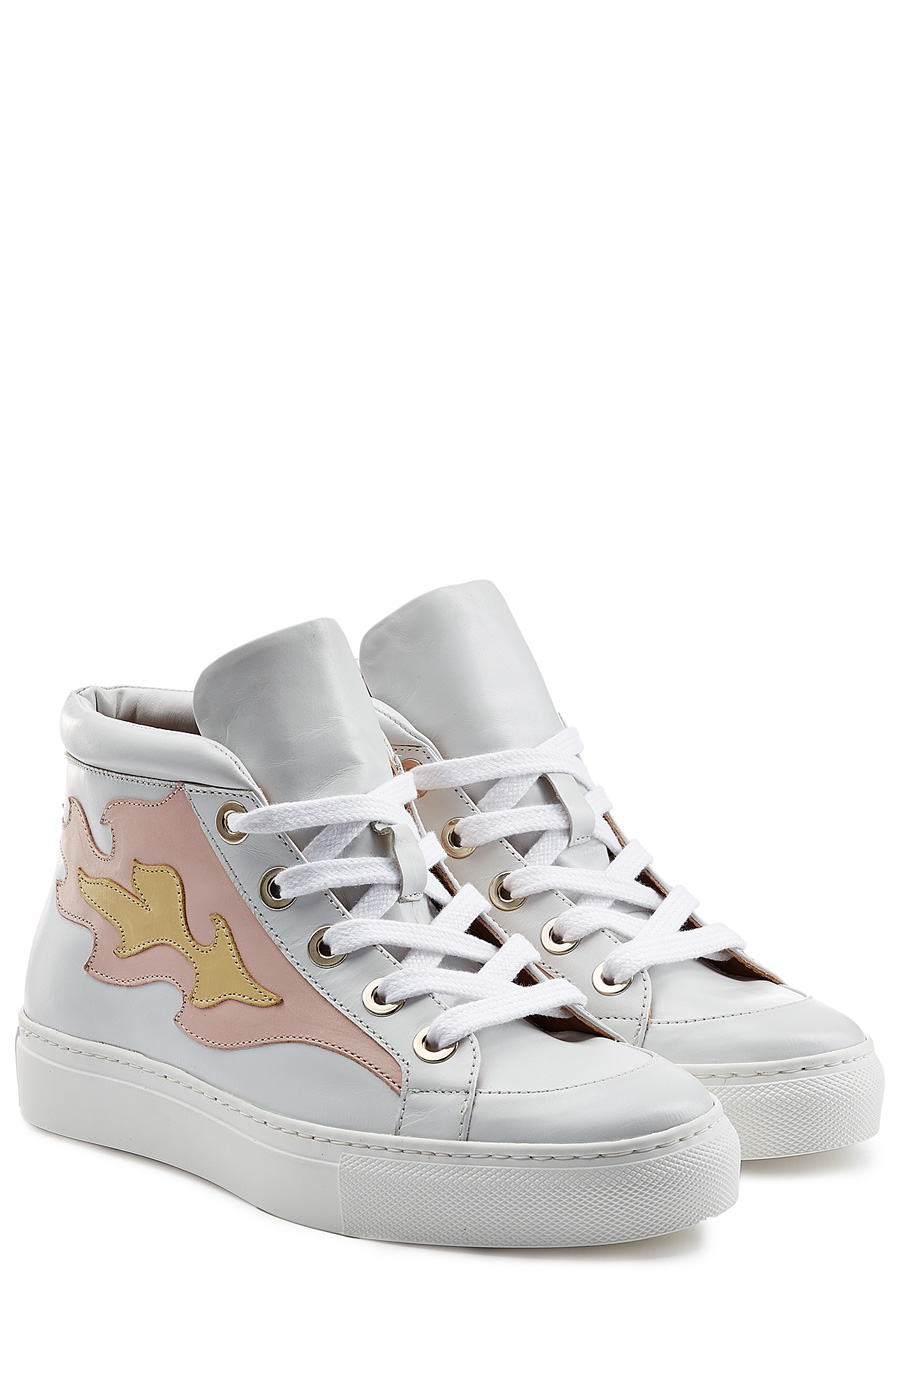 Laurence Dacade Sneakers fashion shoes clearance  hot sale online